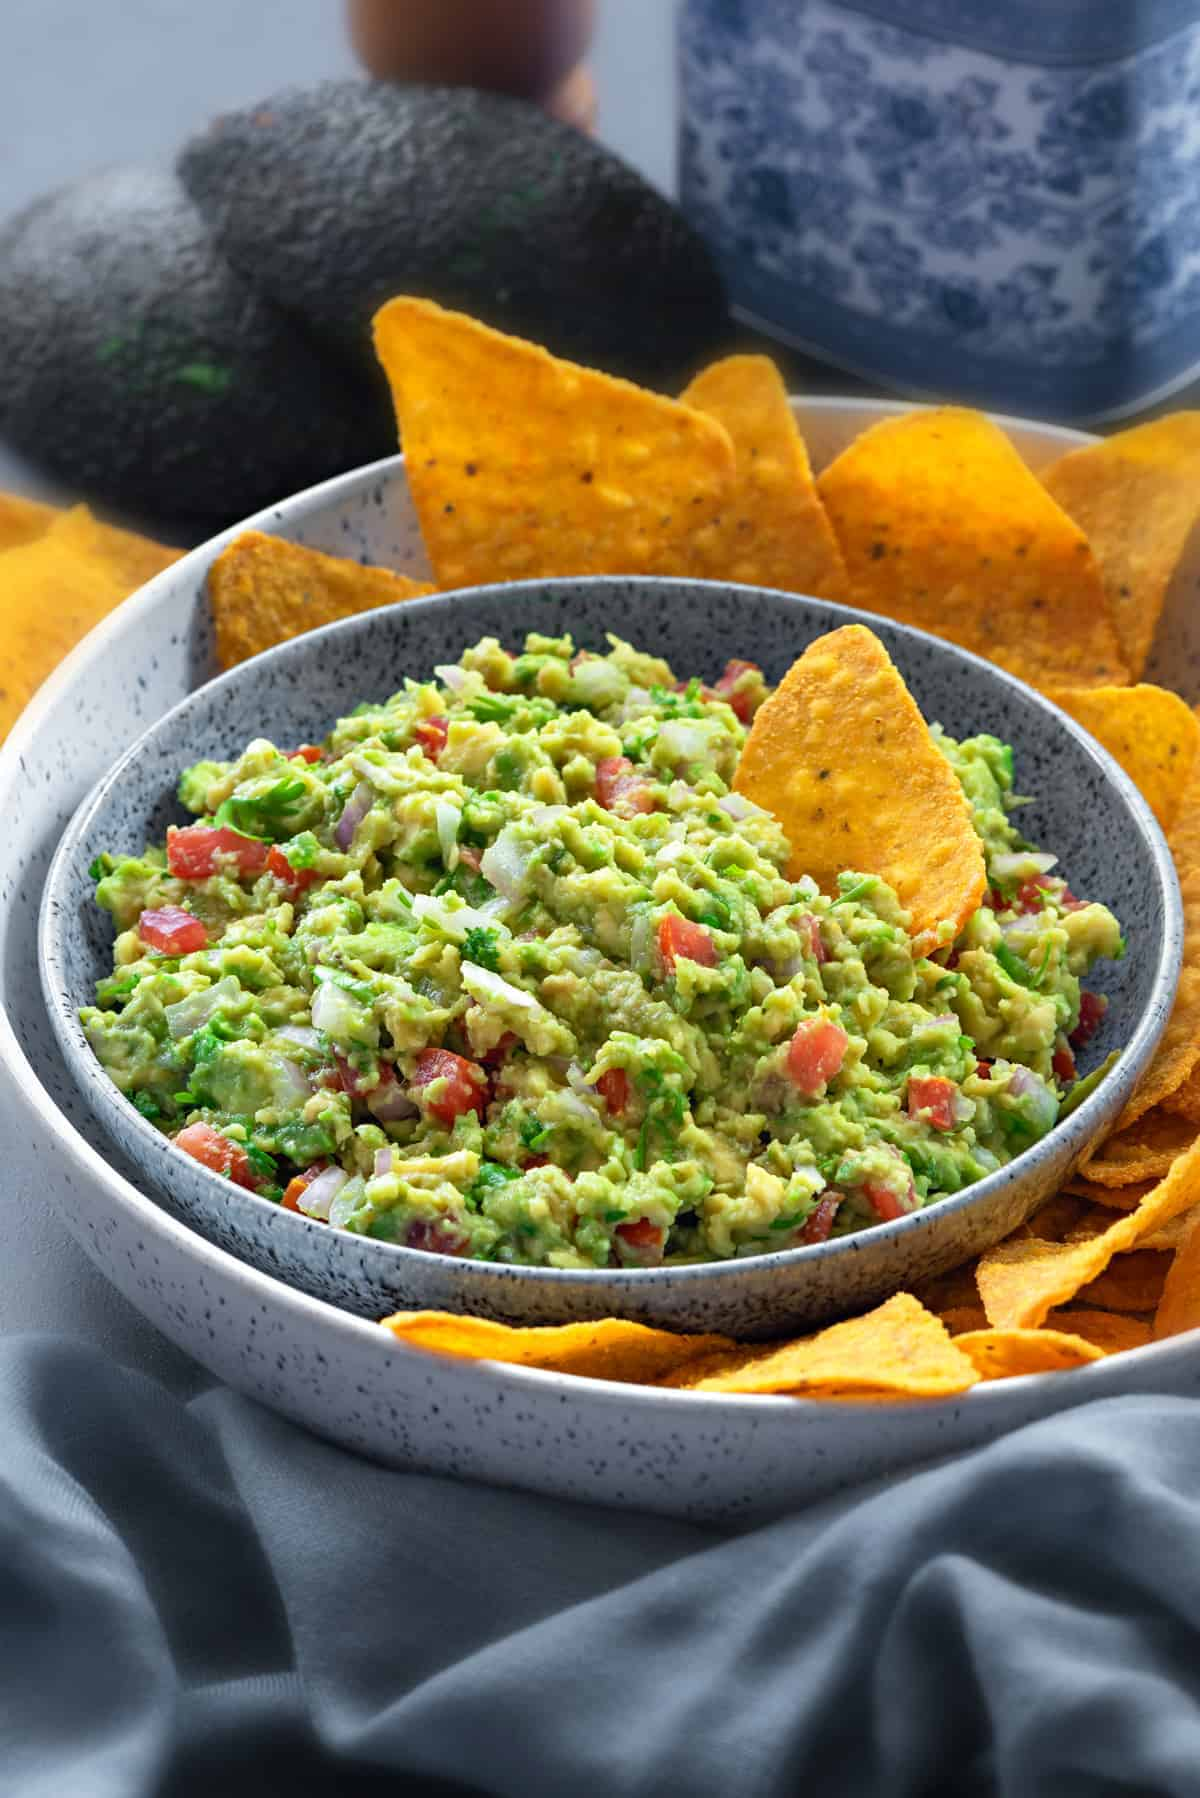 close up of a bowl filled with homemade guacamole with a platter of yellow tortilla chips